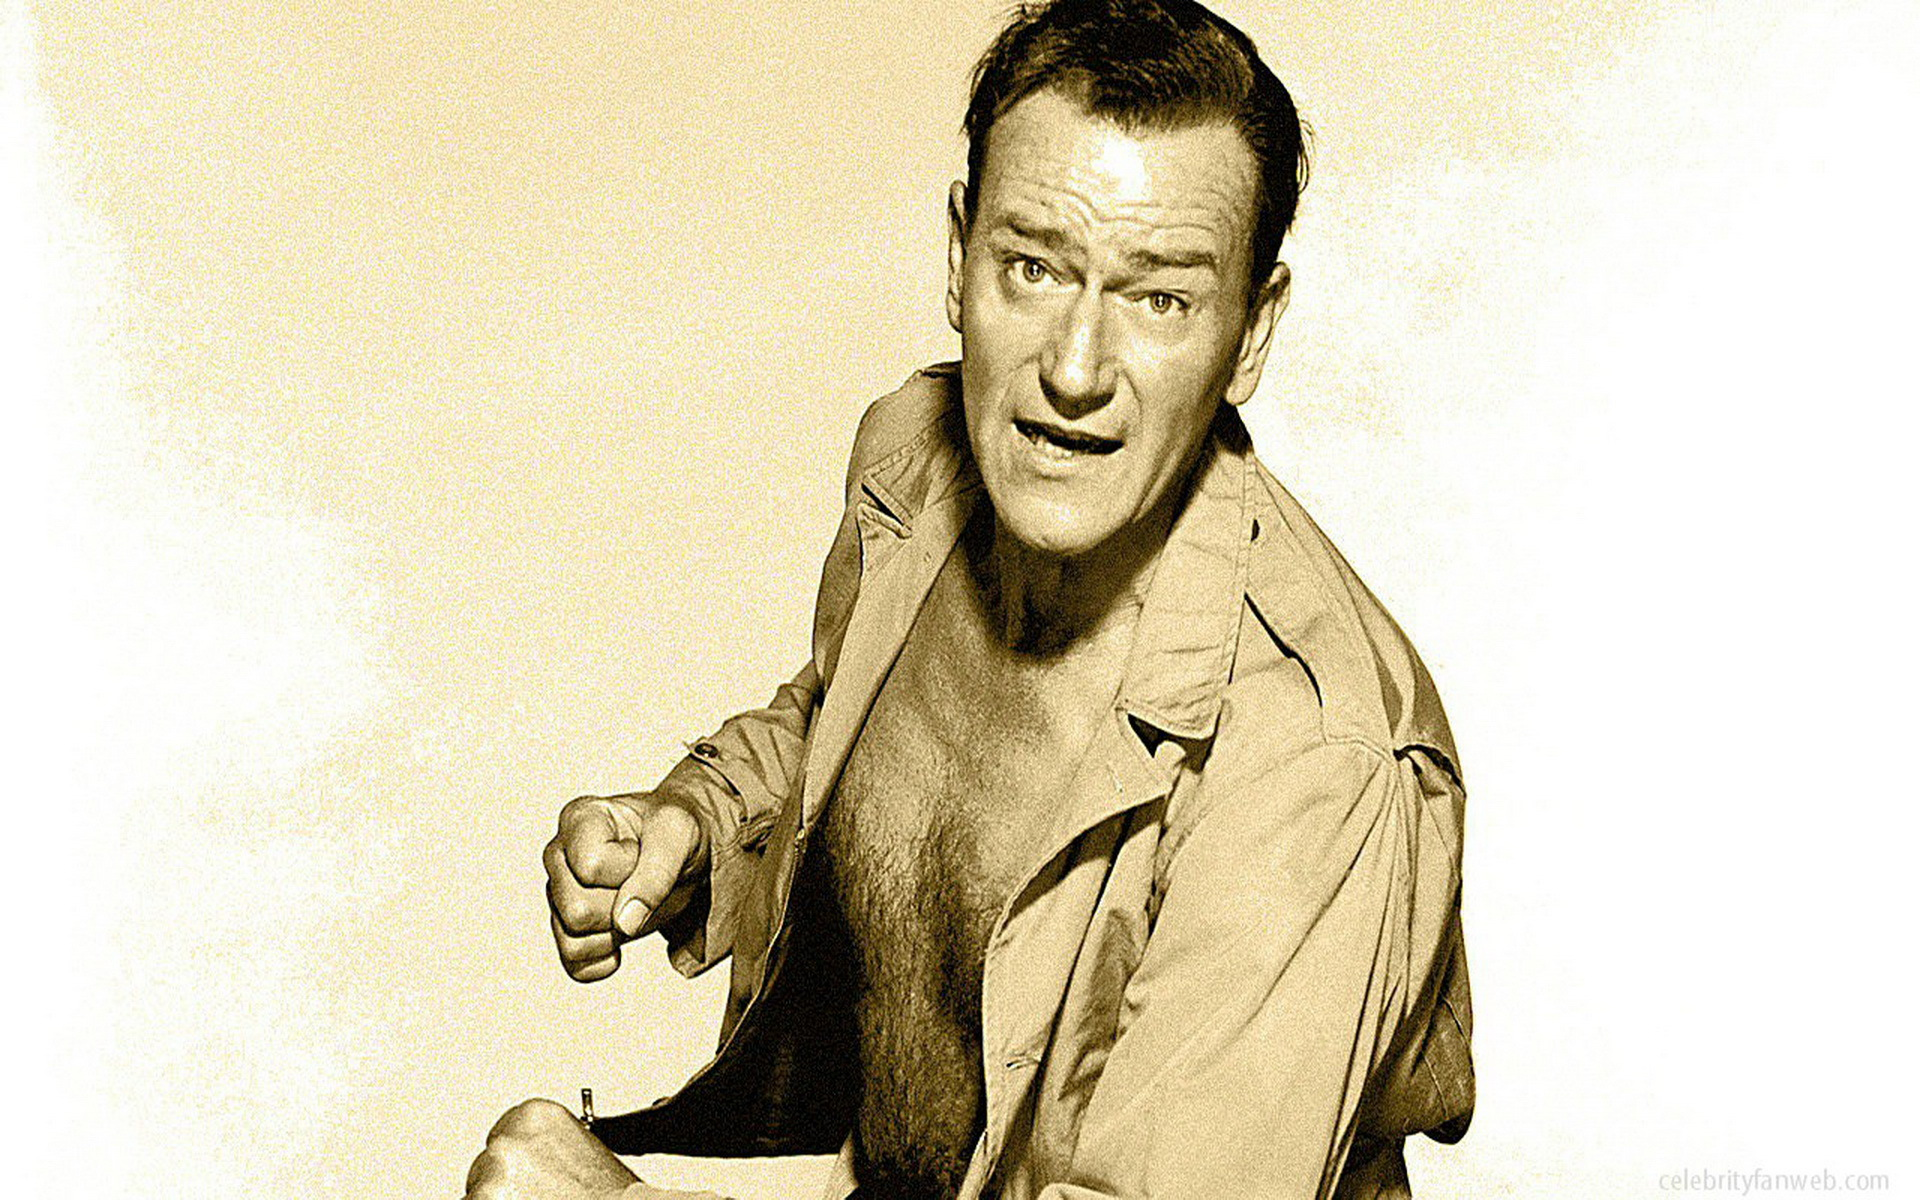 john wayne wallpapers images photos pictures backgrounds